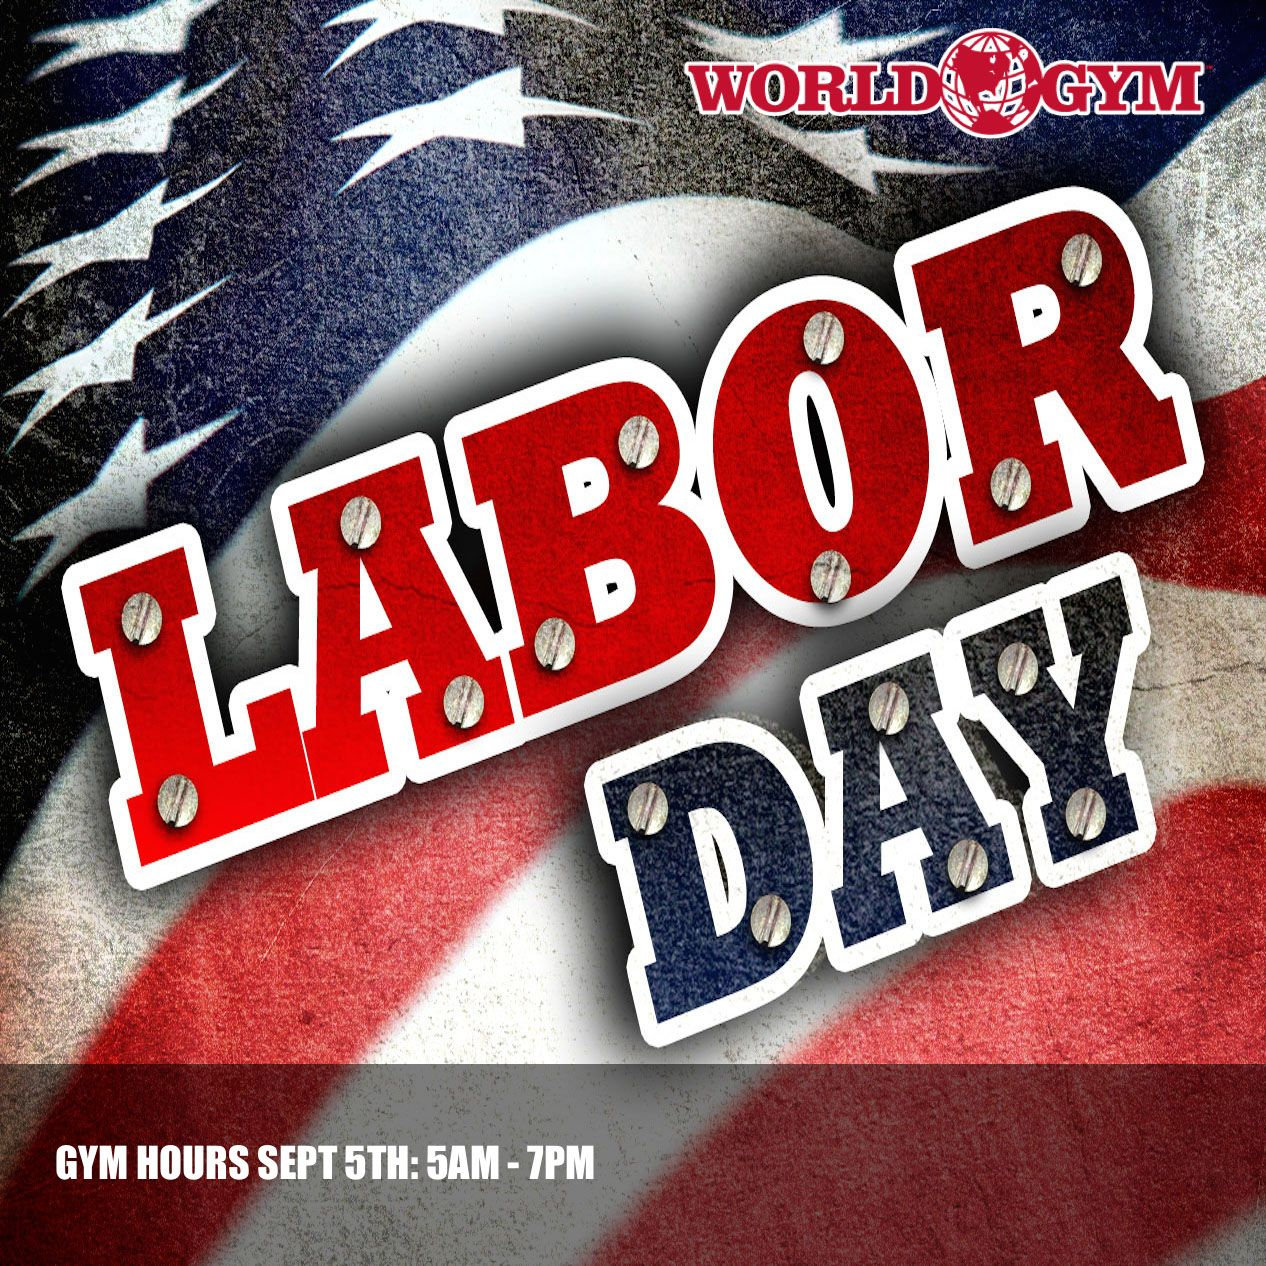 Announcement Our Labor Day Gym Hours This Monday Sept 5th Are 5am 7pm All Group Fitness Classes Will Labor Day Quotes Labor Day Holiday Labor Day Pictures